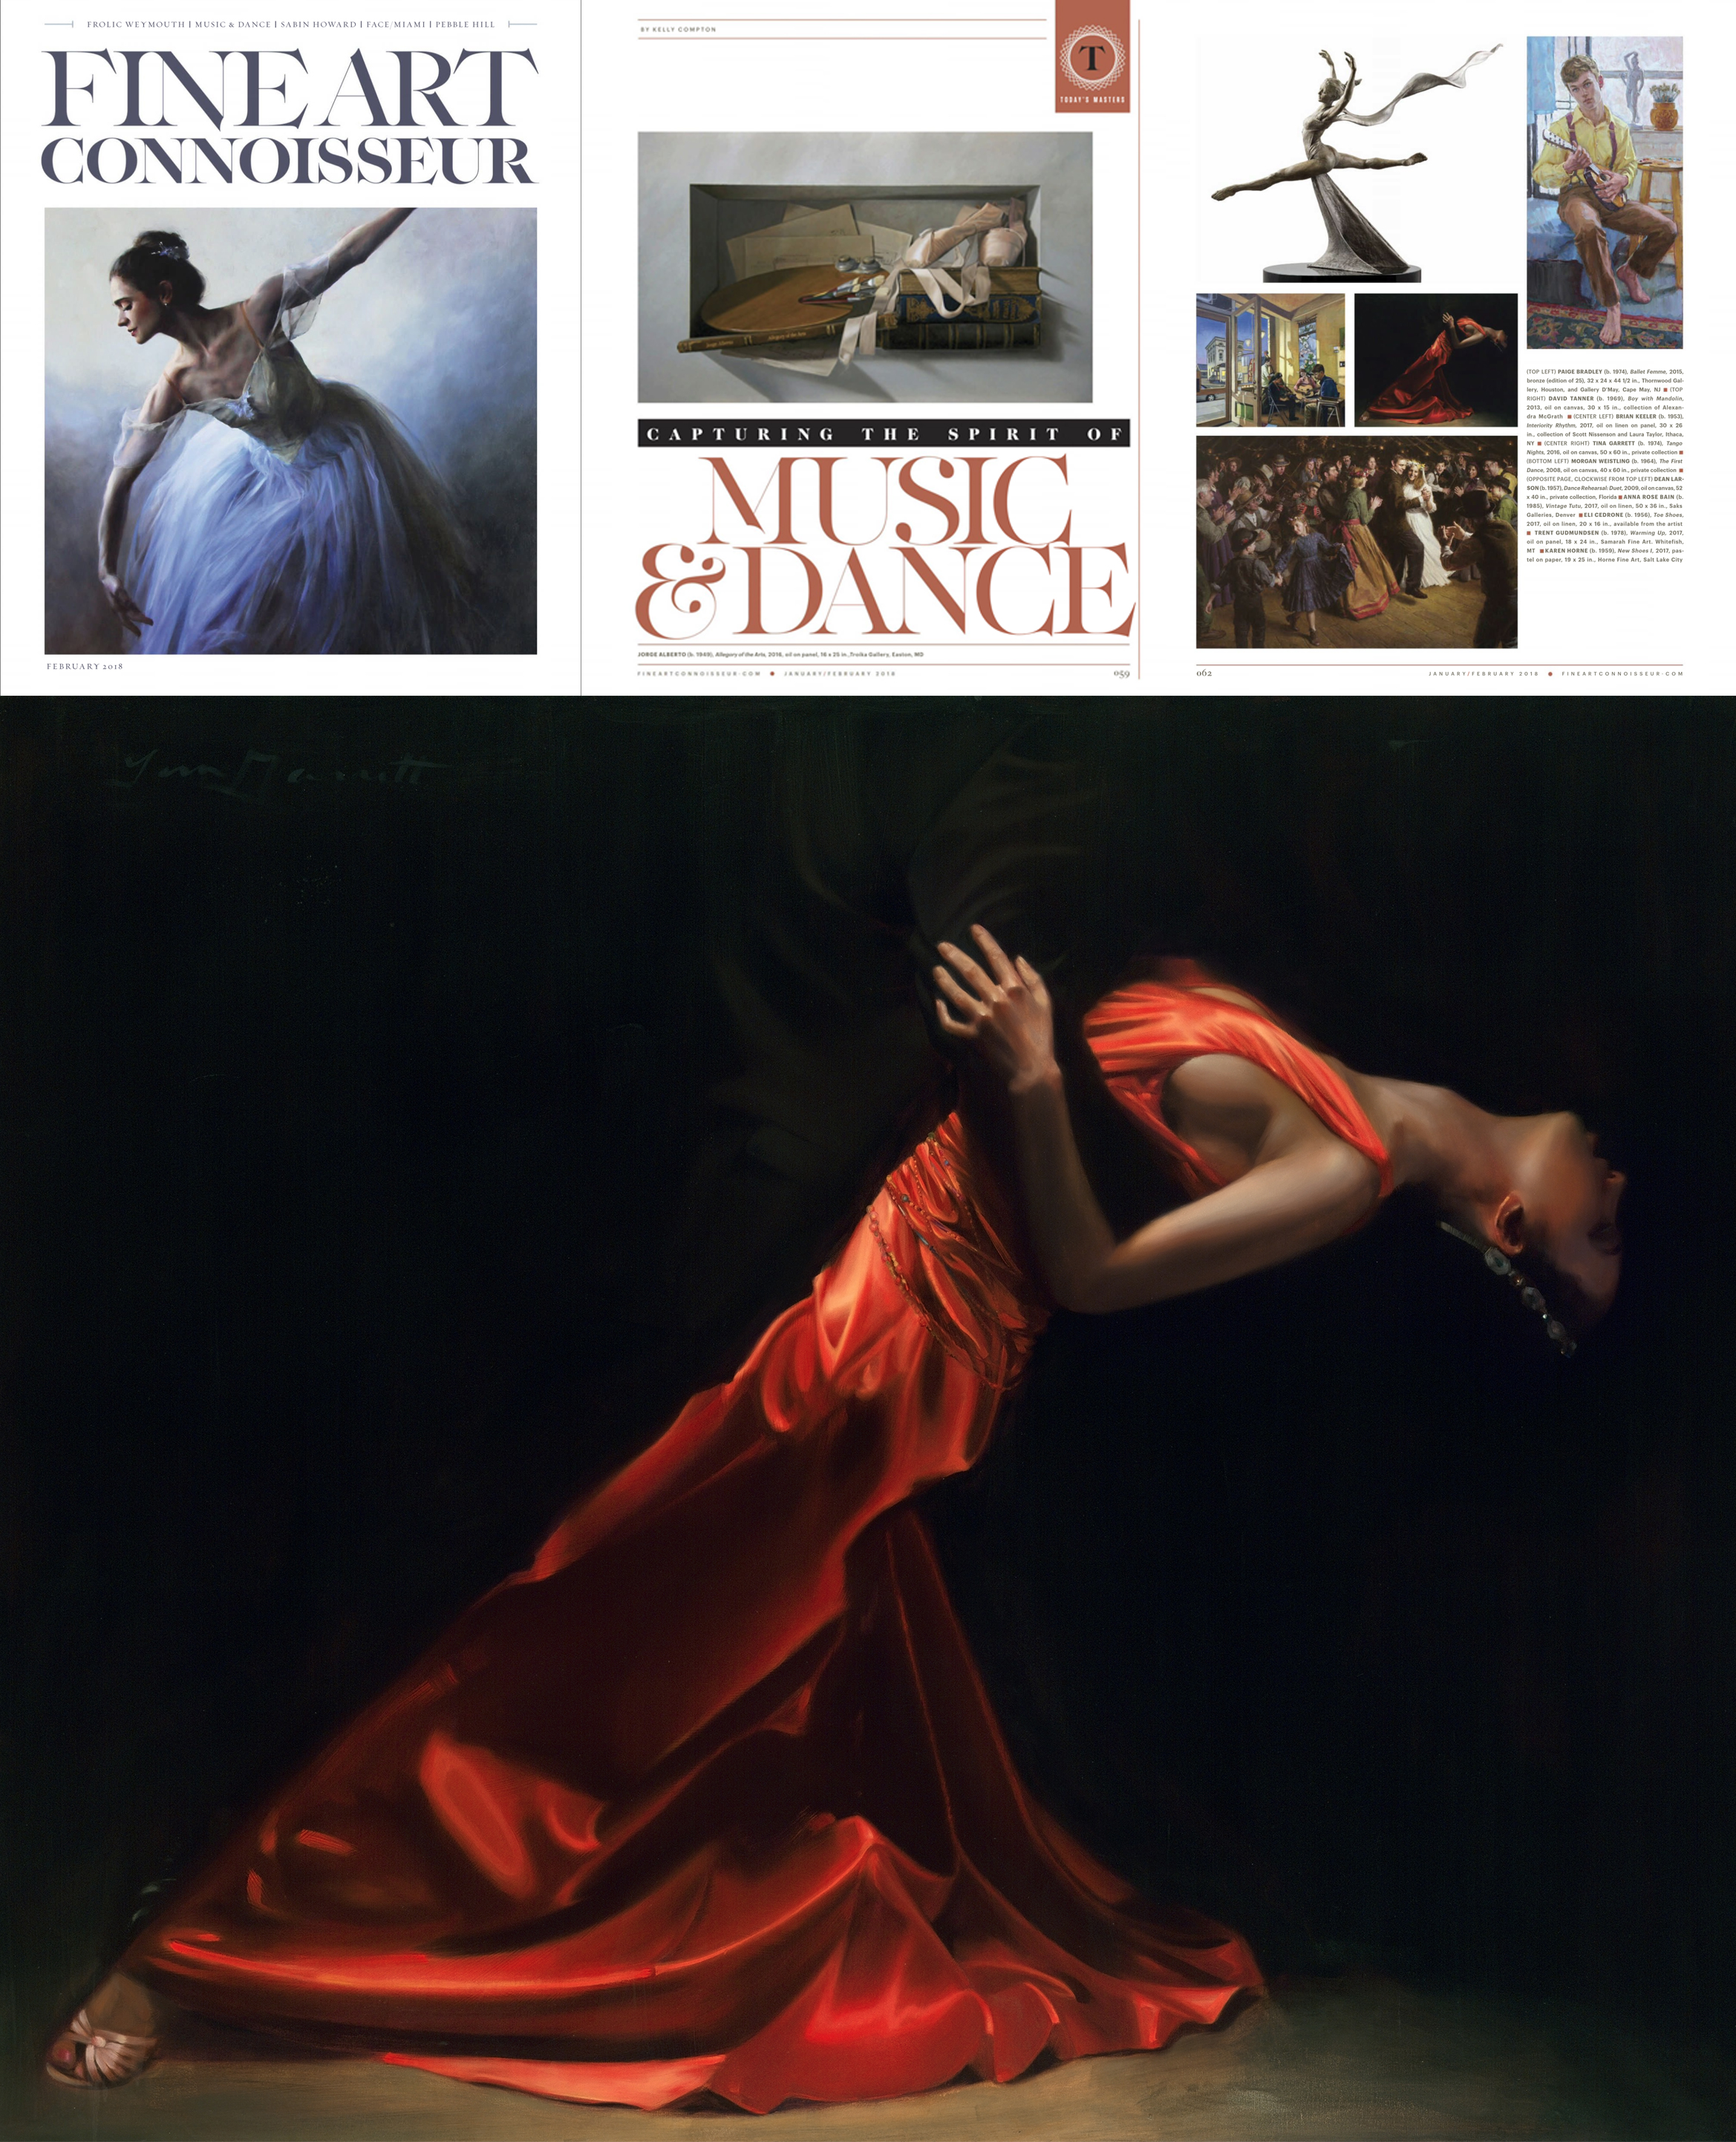 """Tango Nights"" 50x60 inches, Oil, Private Collection was chosen for the ""Today's Masters — Capturing the Spirit of Music & Dance"" feature article in the January/February issue of Fine Art Connoisseur Magazine! Dancers have inspired most of Tina's work including Tango, Flamenco and Ballet dancers. Dancers' posture, grace, strength and athleticism makes them one of Tina's most favorite subjects. To see available paintings featuring dancers, visit Tina's   Available Works Gallery  ."